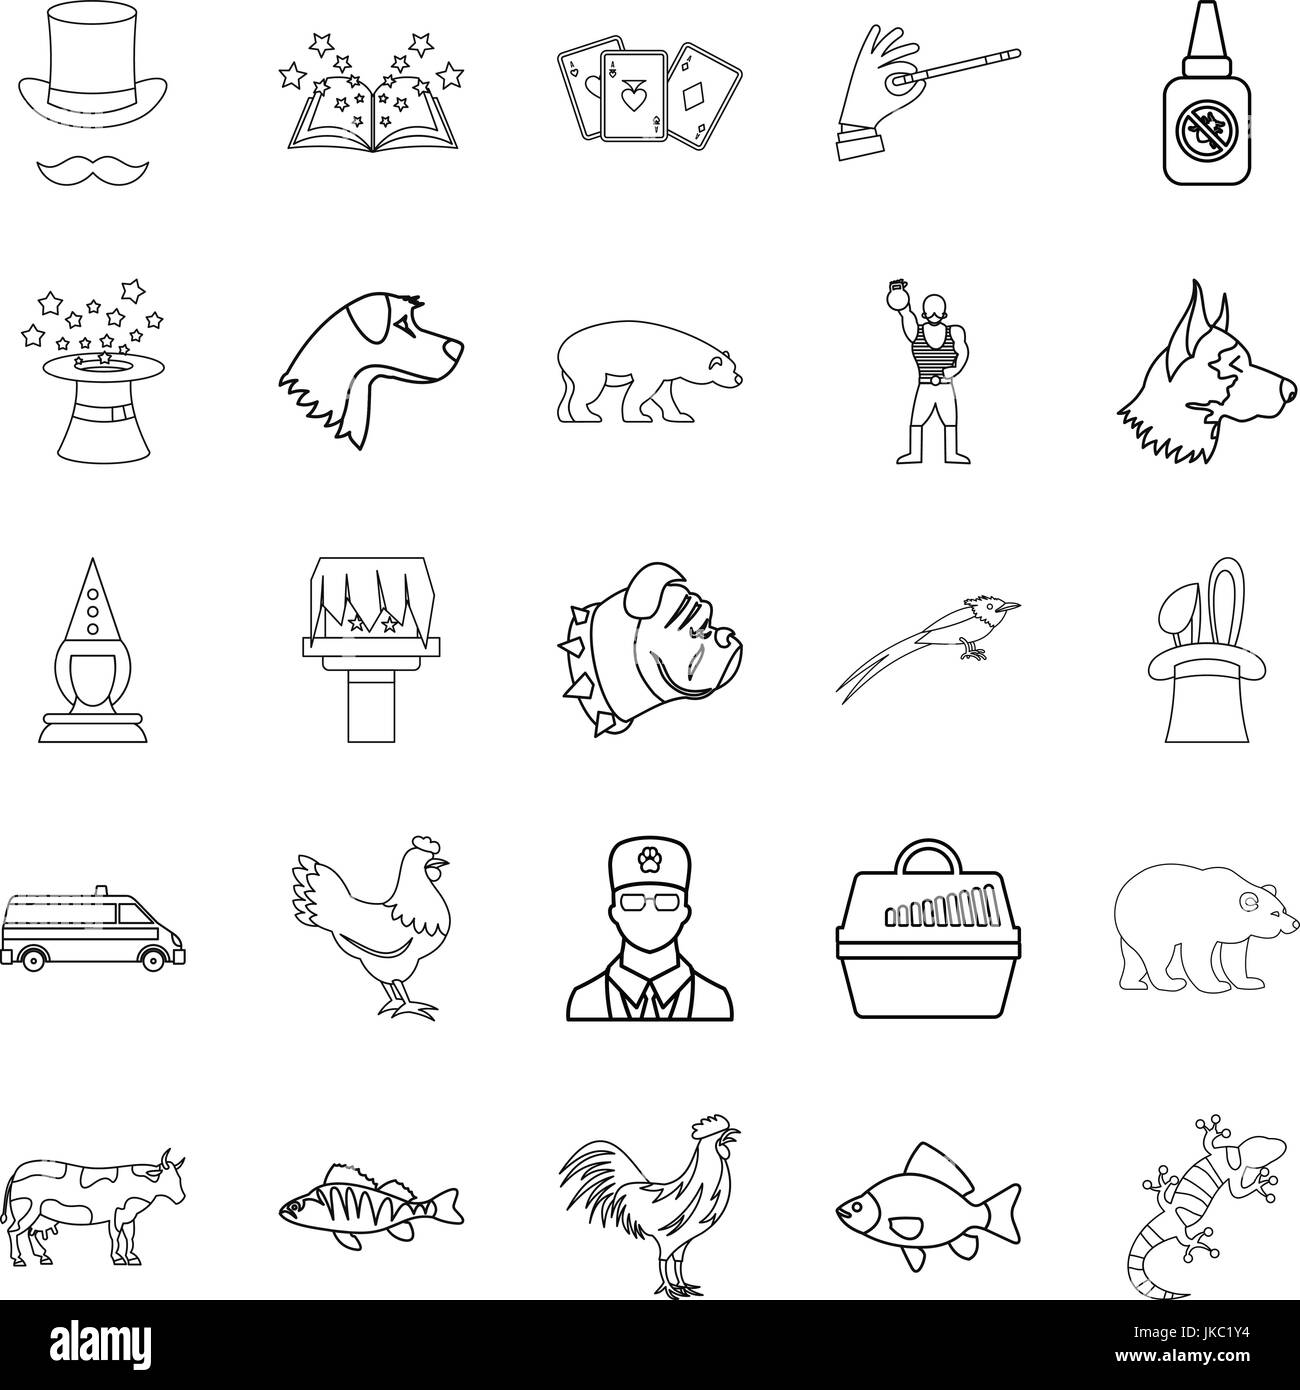 Veterinarian icons set, outline style - Stock Image